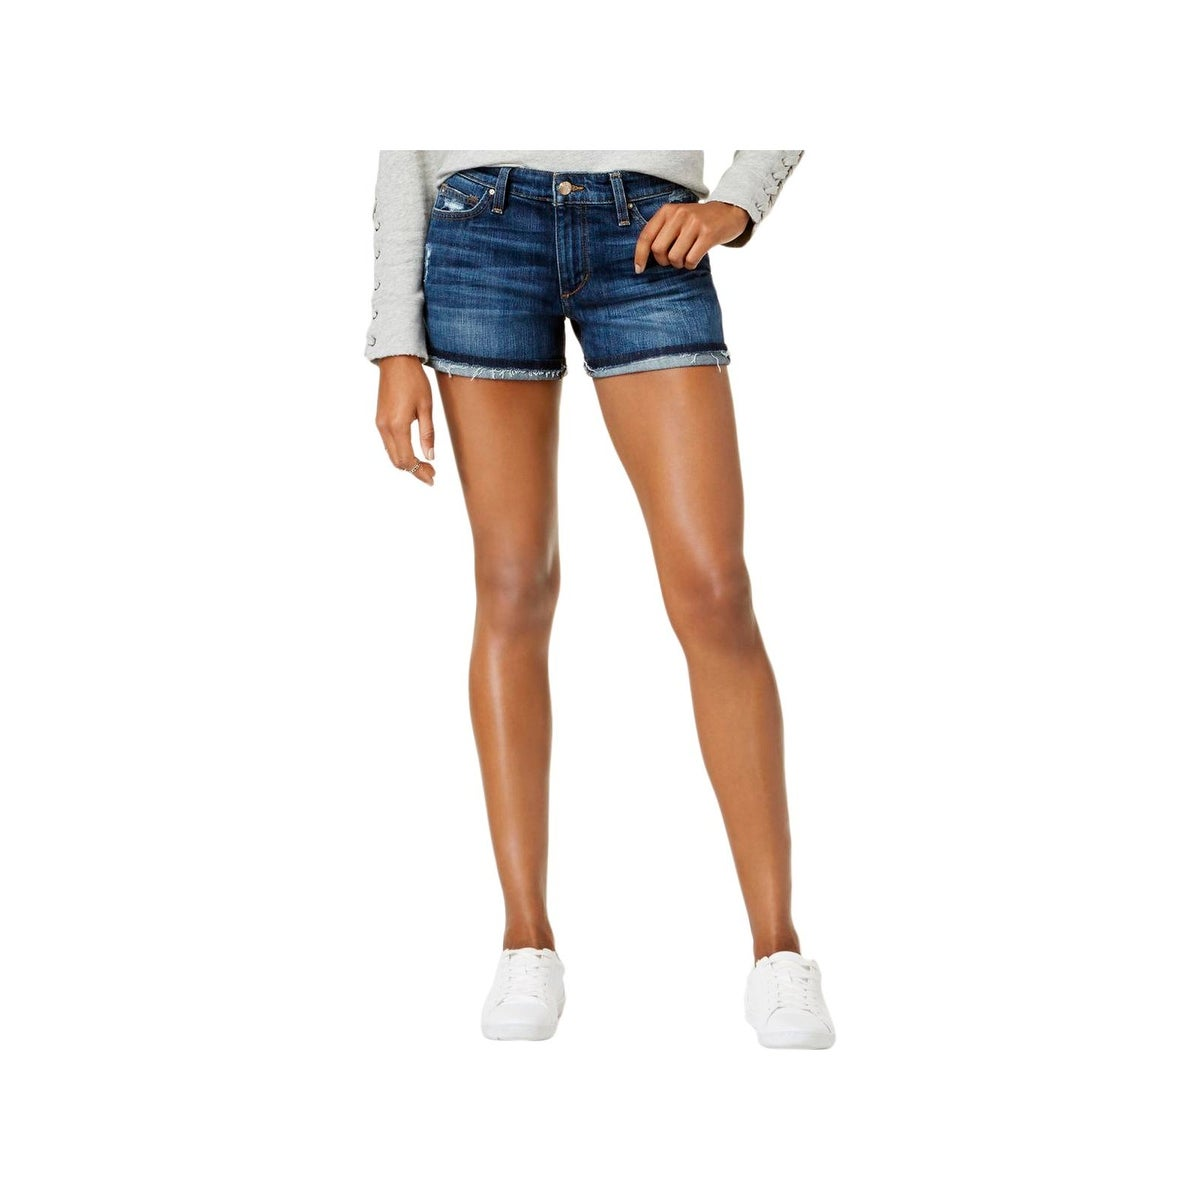 23e720d160 Shop Joe's Jeans Womens Markie Denim Shorts Cuffed Mid-Rise - Free Shipping  On Orders Over $45 - Overstock - 22358796